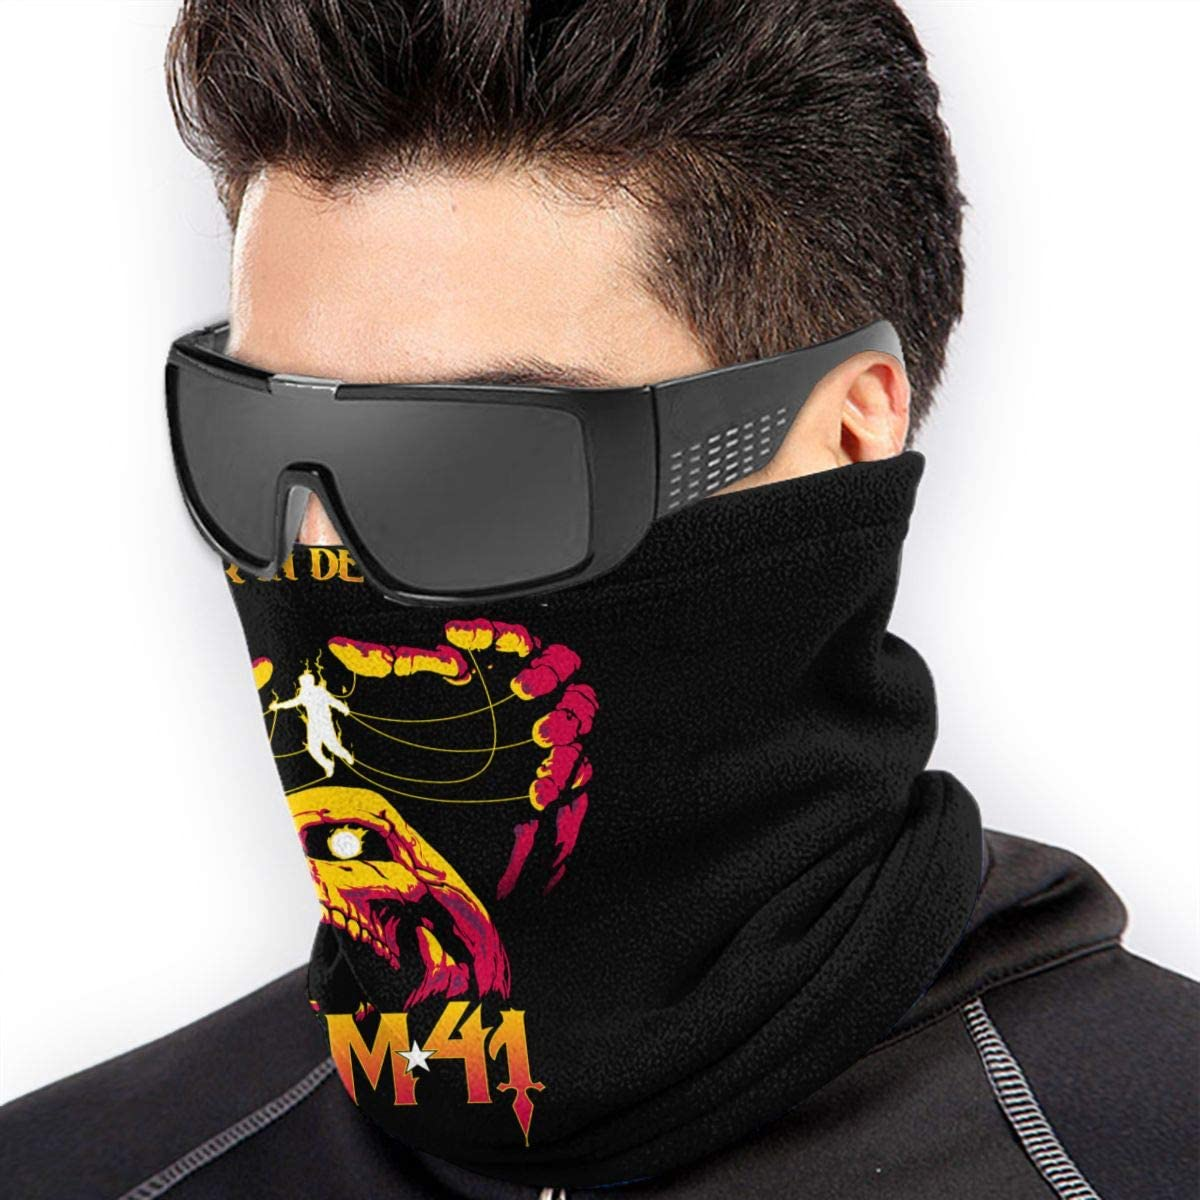 Sum 41 Breathable Face Mask Scarf Microfiber Neck Warmer For Unisex